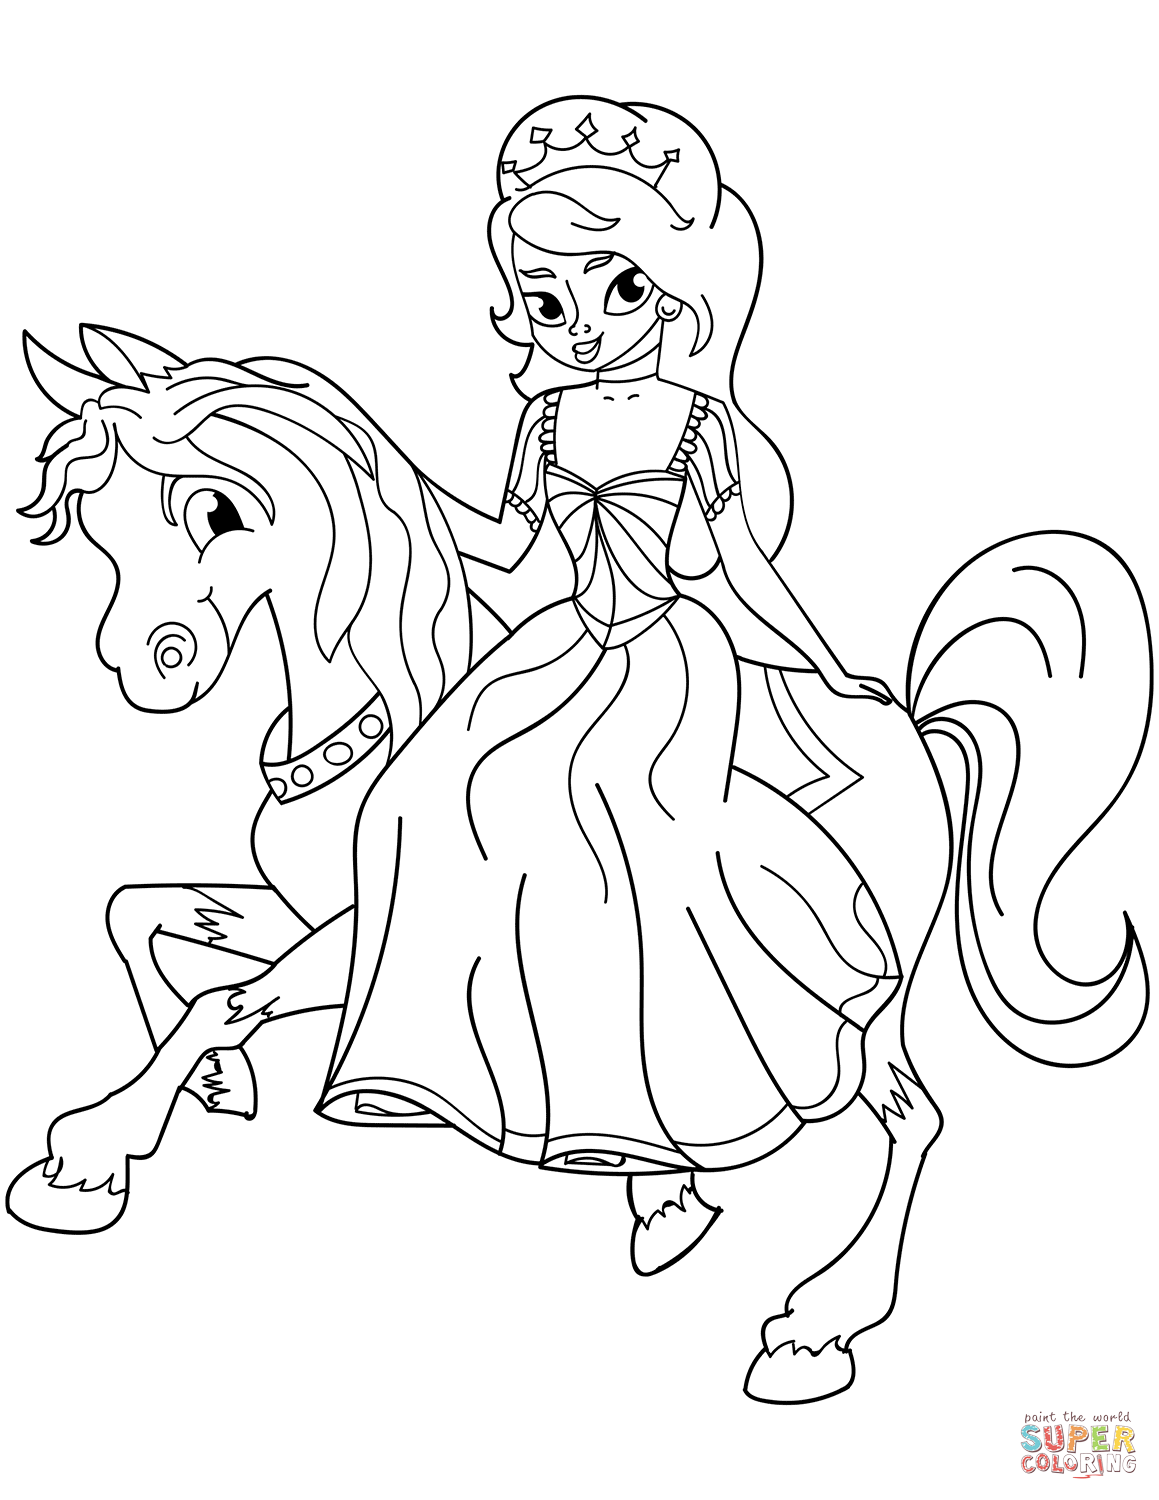 Princess Riding Horse Coloring Page Free Printable Coloring Pages